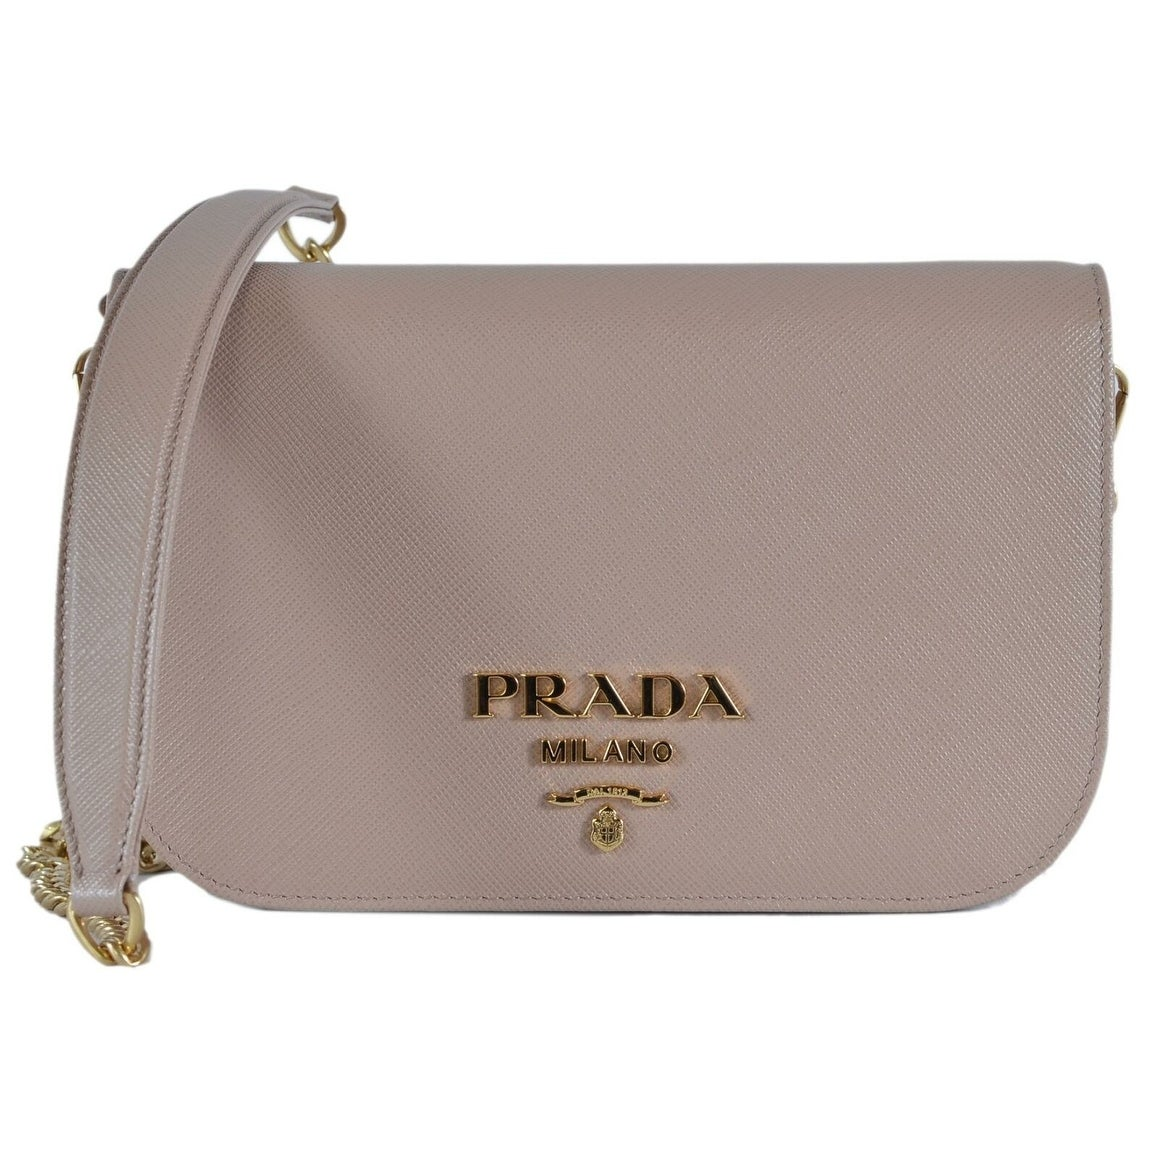 37f4f558ef6 Shop Prada 1BP013 Cipria Borsa Portafoglio Saffiano Lux Small Crossbody  Purse Bag - Beige - Free Shipping Today - Overstock - 27423067